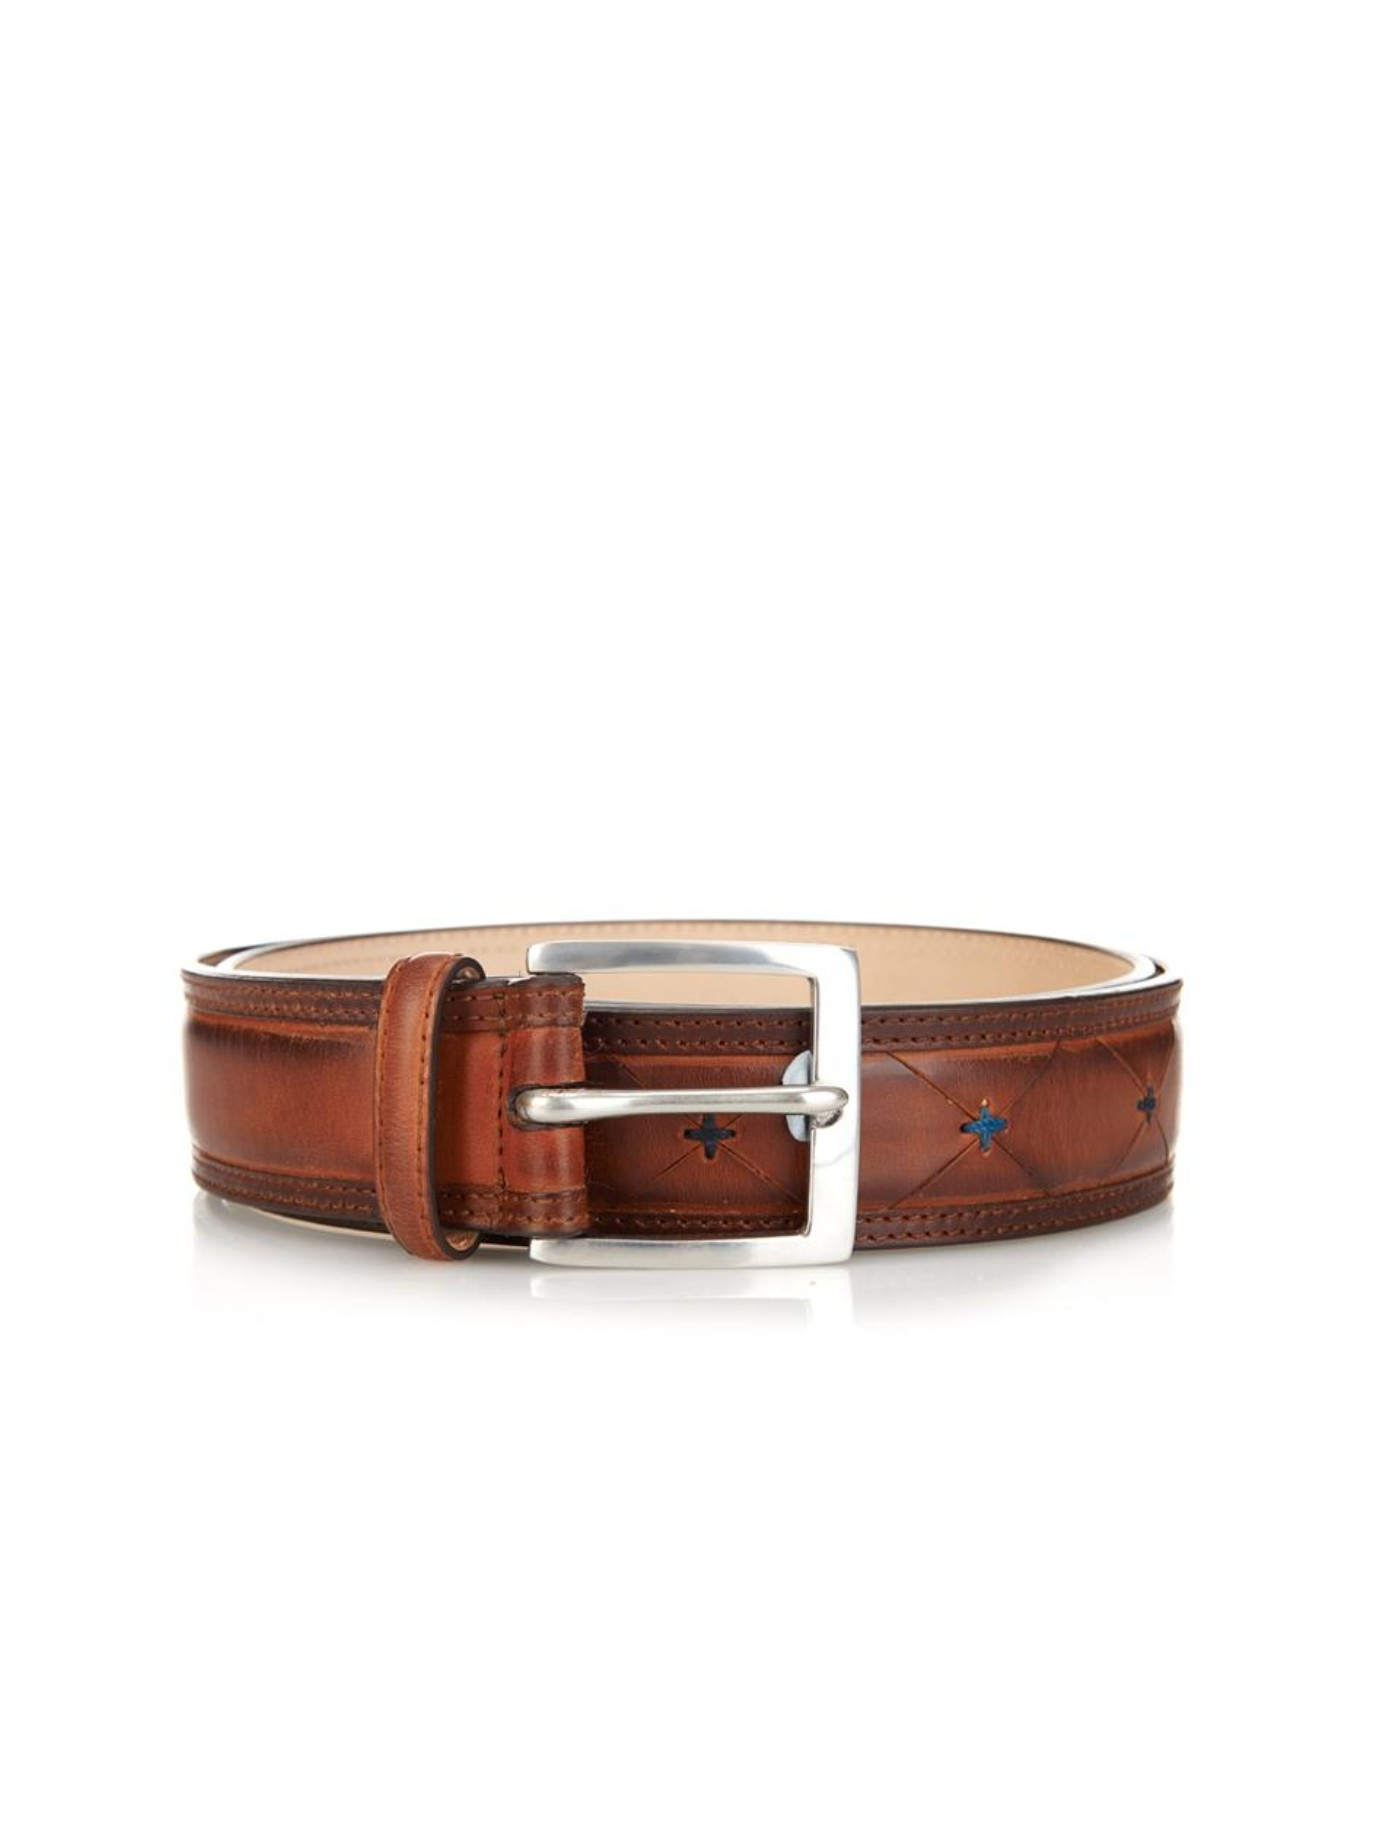 paul smith contrast stitch leather belt in brown for